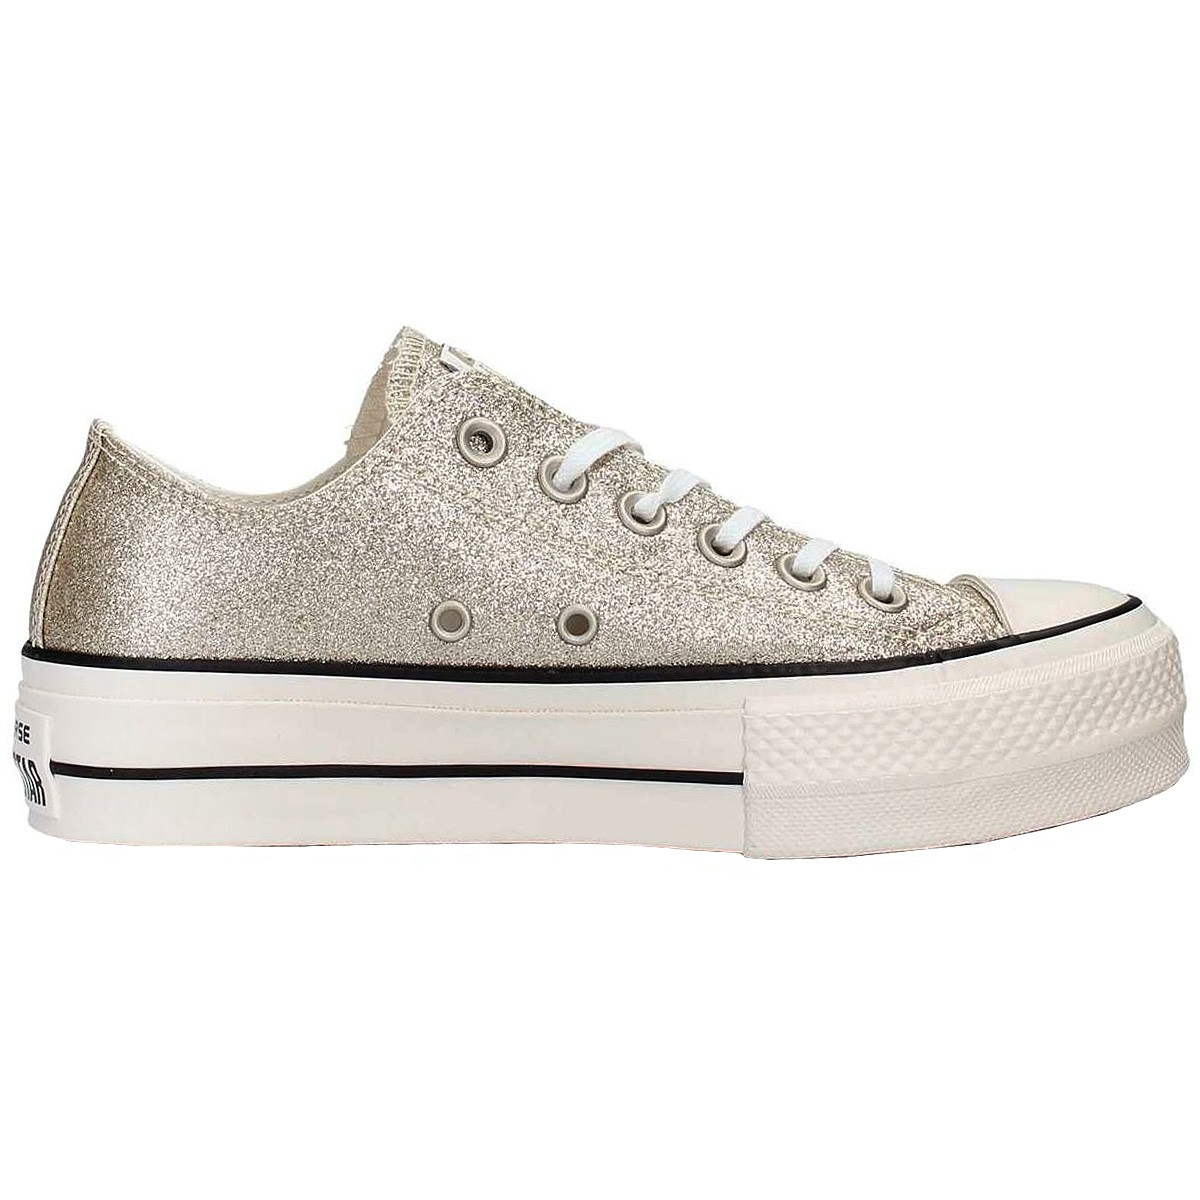 7b50676abacd75 Sneakers Converse Chuck Taylor All Star Lift Ox - Woman shoes